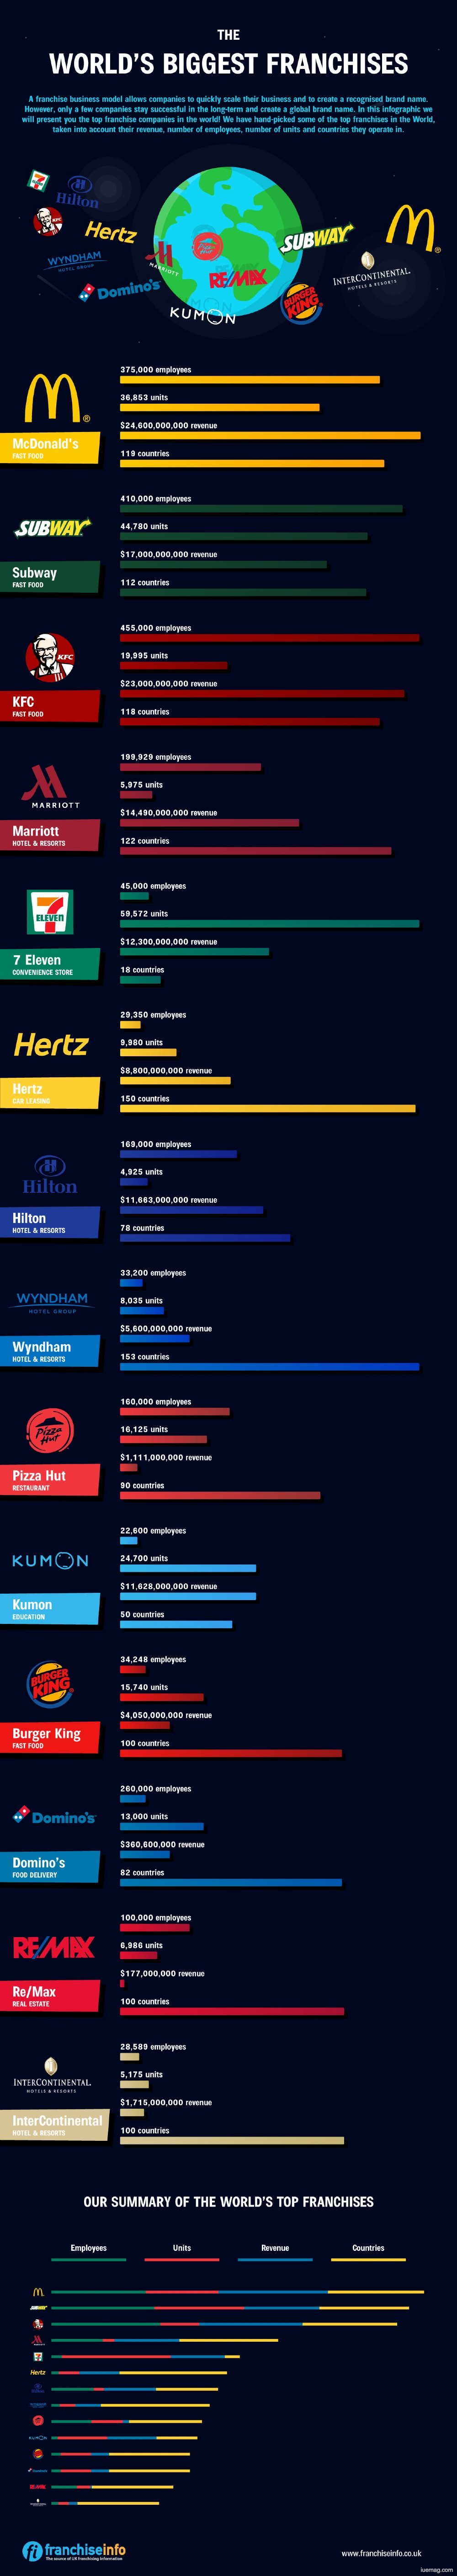 The biggest franchises in the world